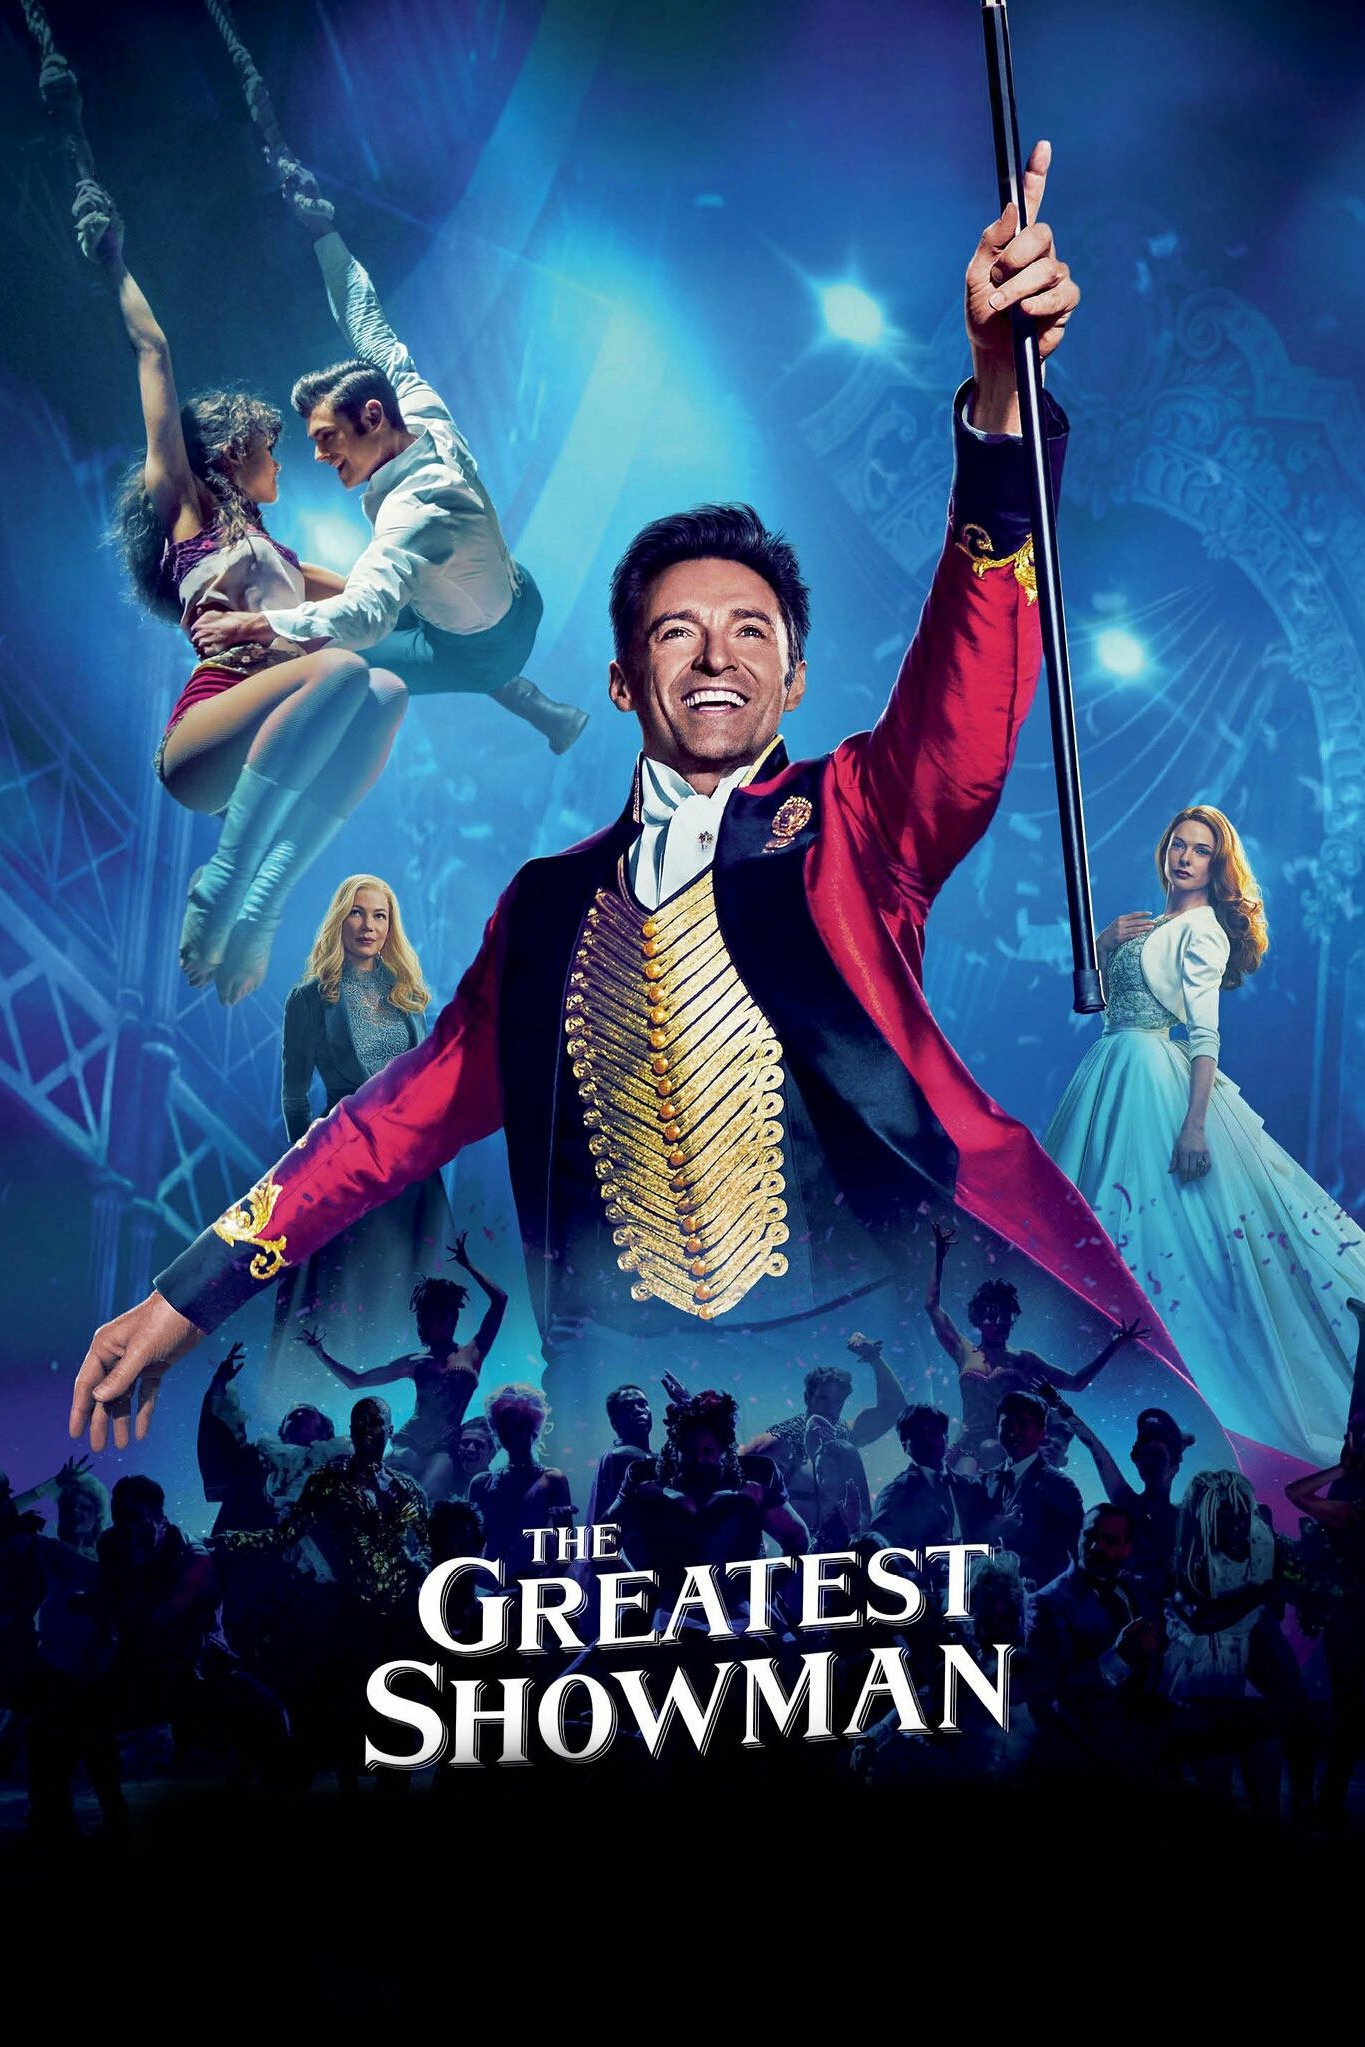 The Greatest Showman, 2017